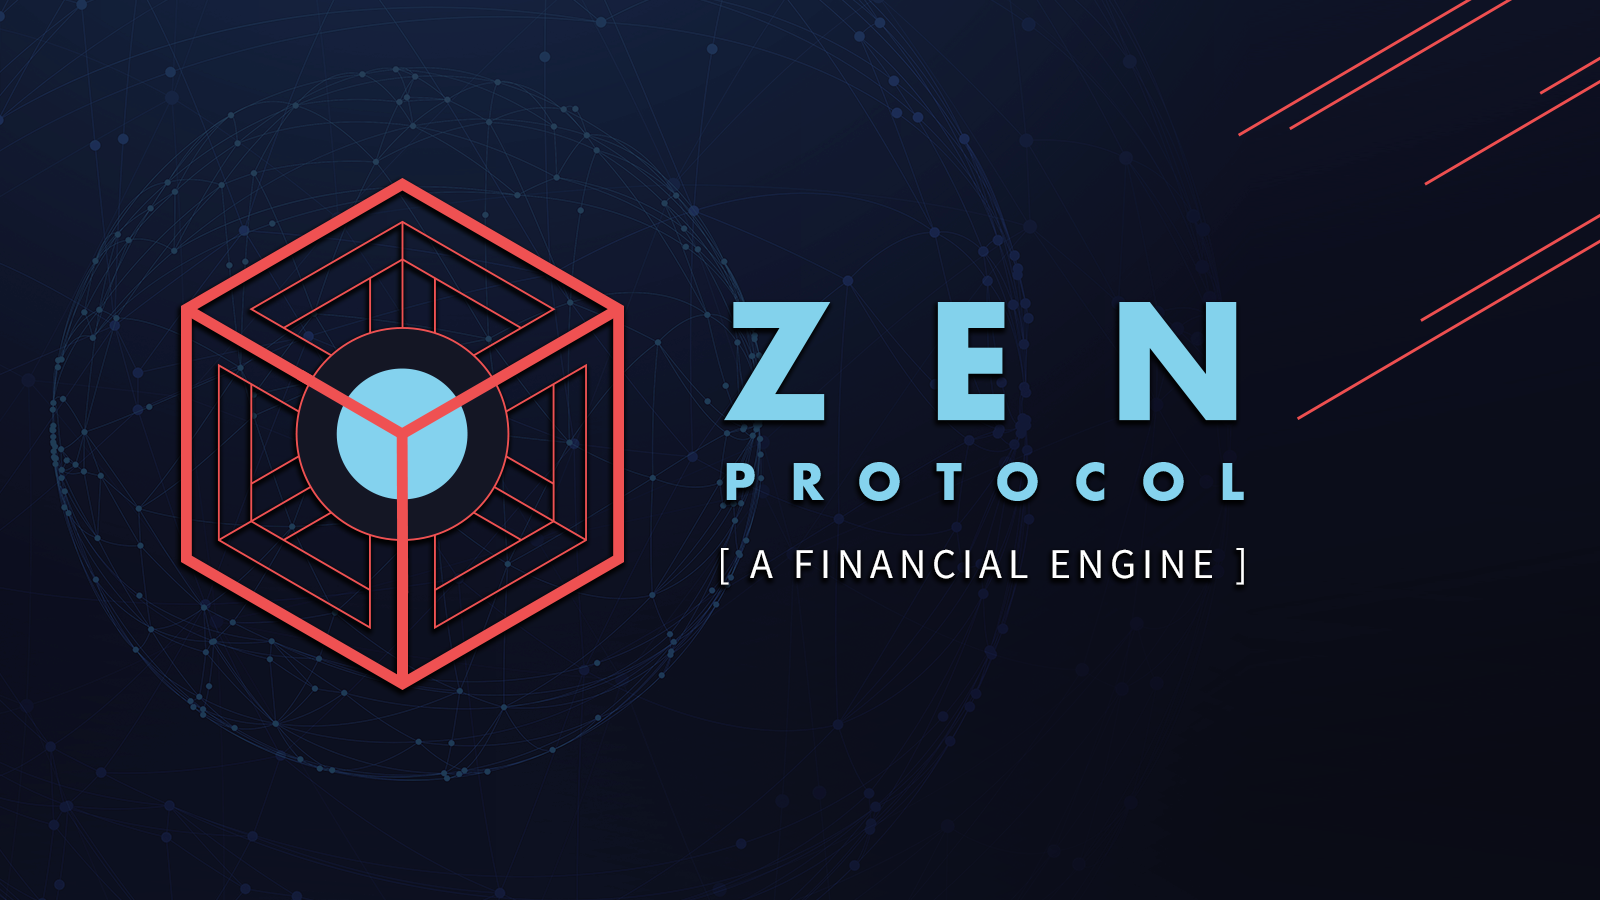 The Cryptocurrency News Group Zen Protocol's Mission for Decentralized Finance